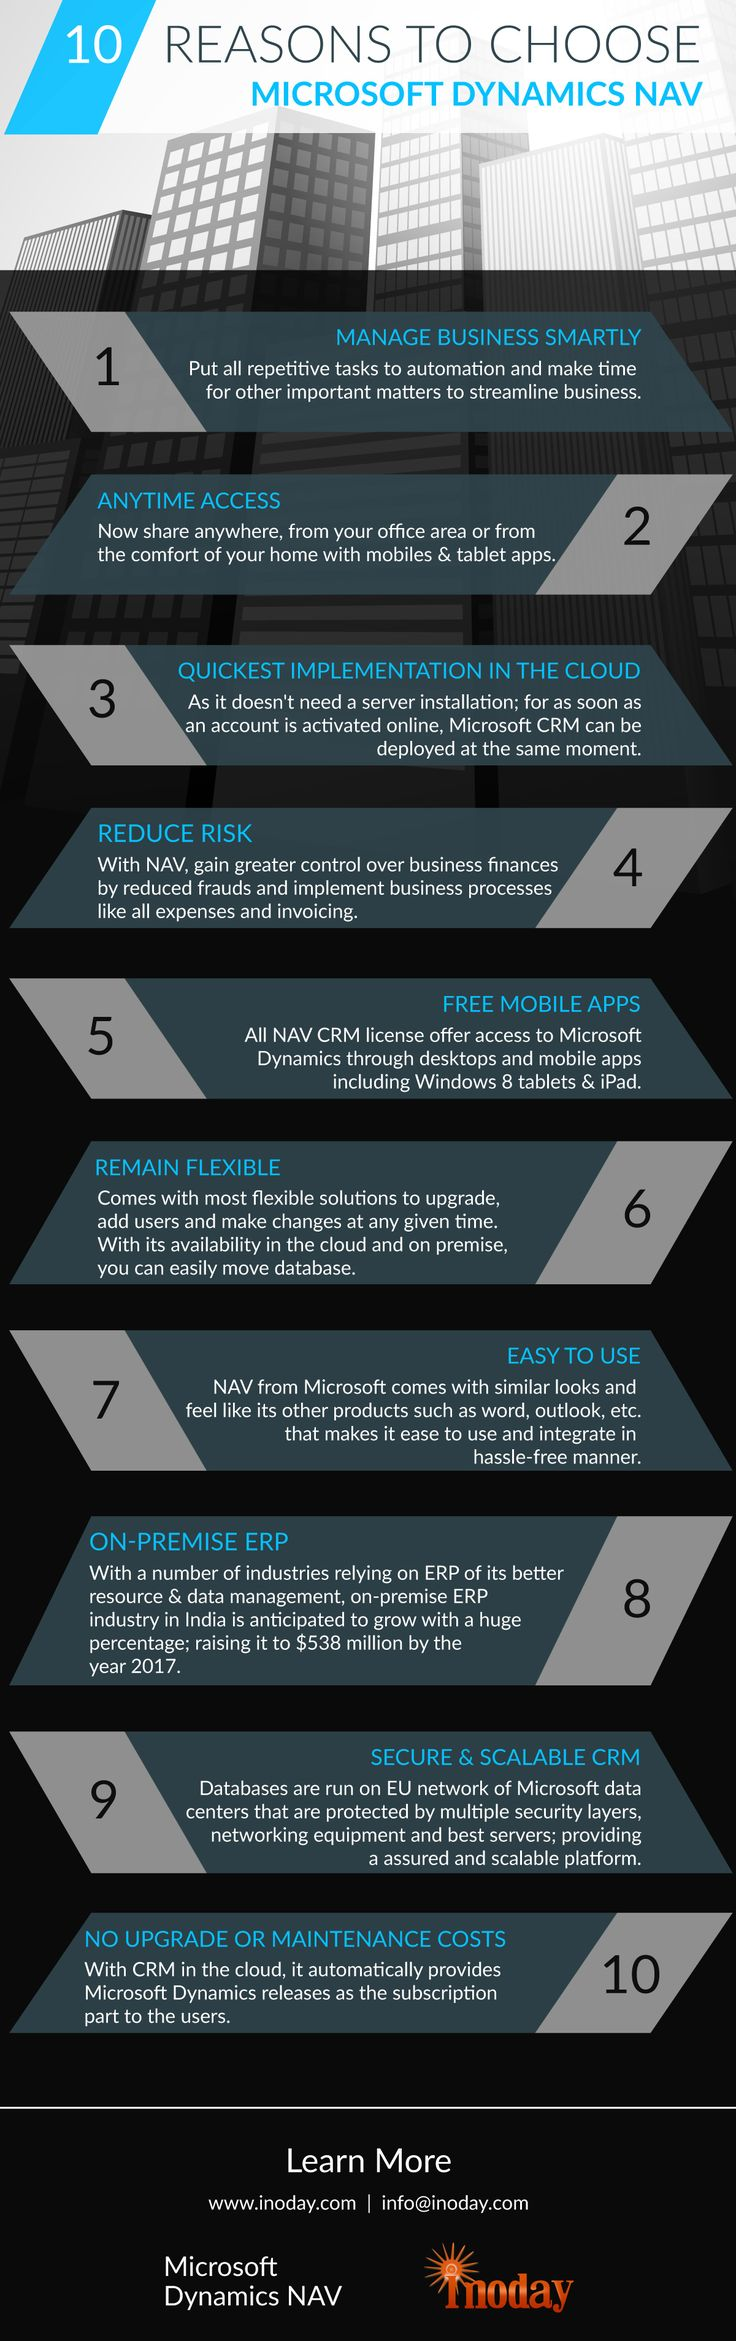 10 important reasons to choose #Microsoft #Dynamics #NAV for growing business. http://inoday.com/navision-microsoft-dynamics/